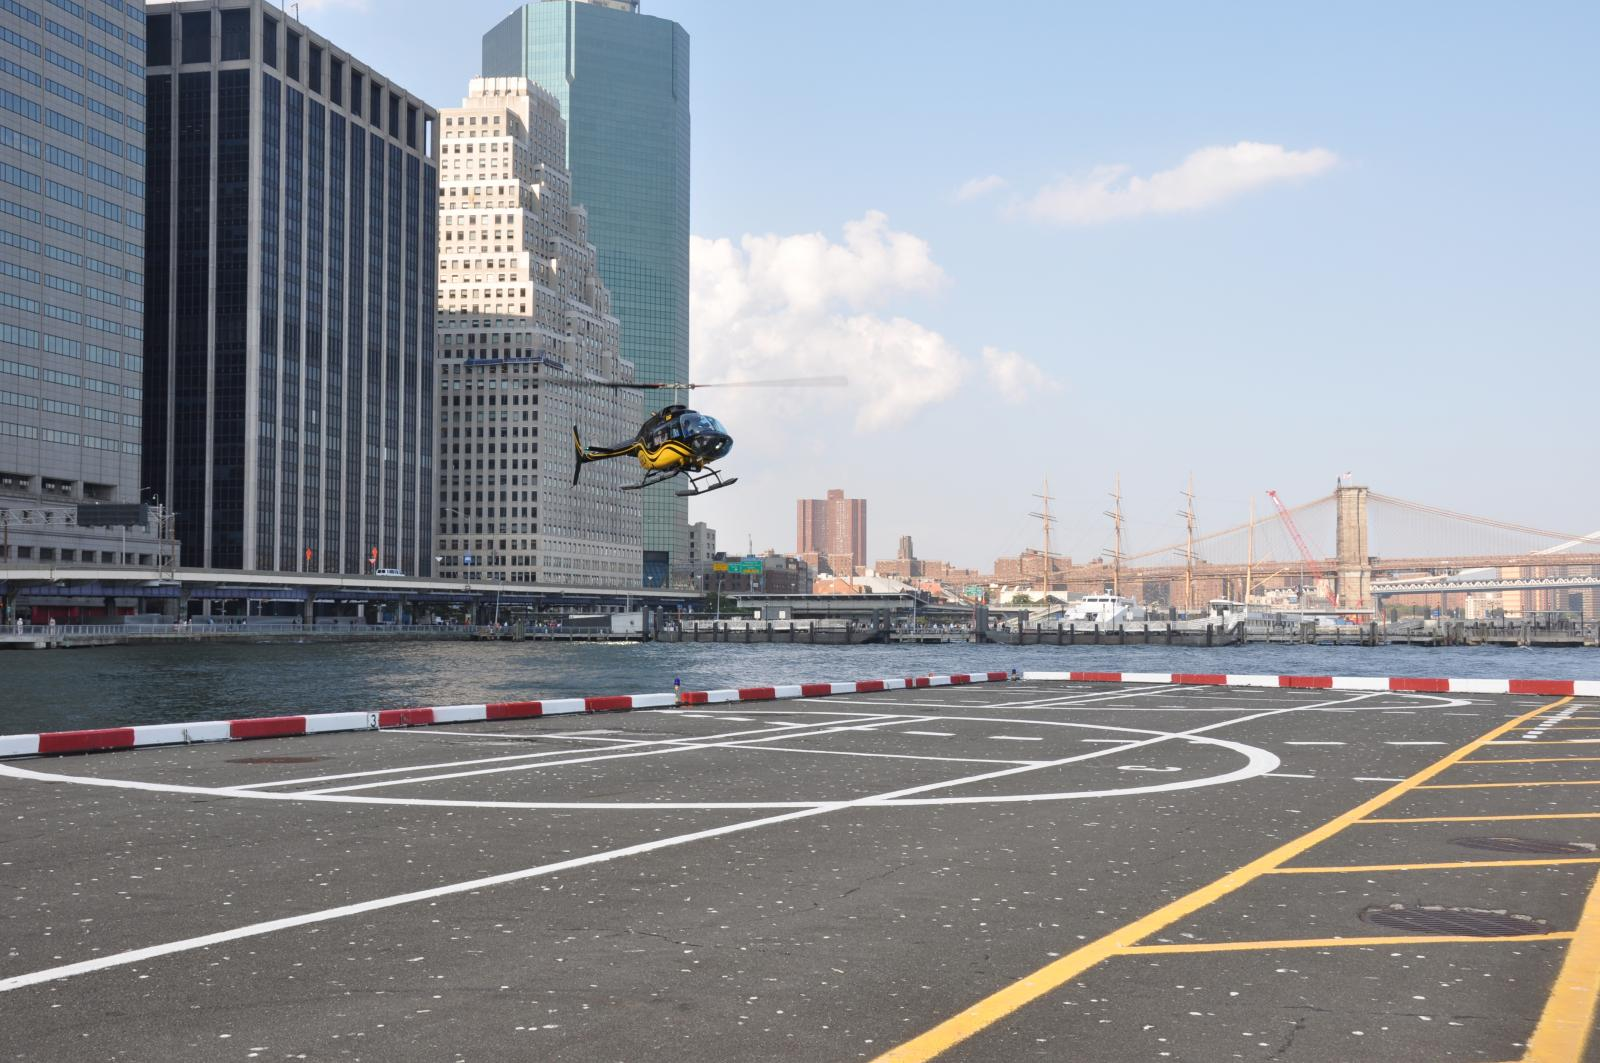 Heliport New York Helicopter Tour